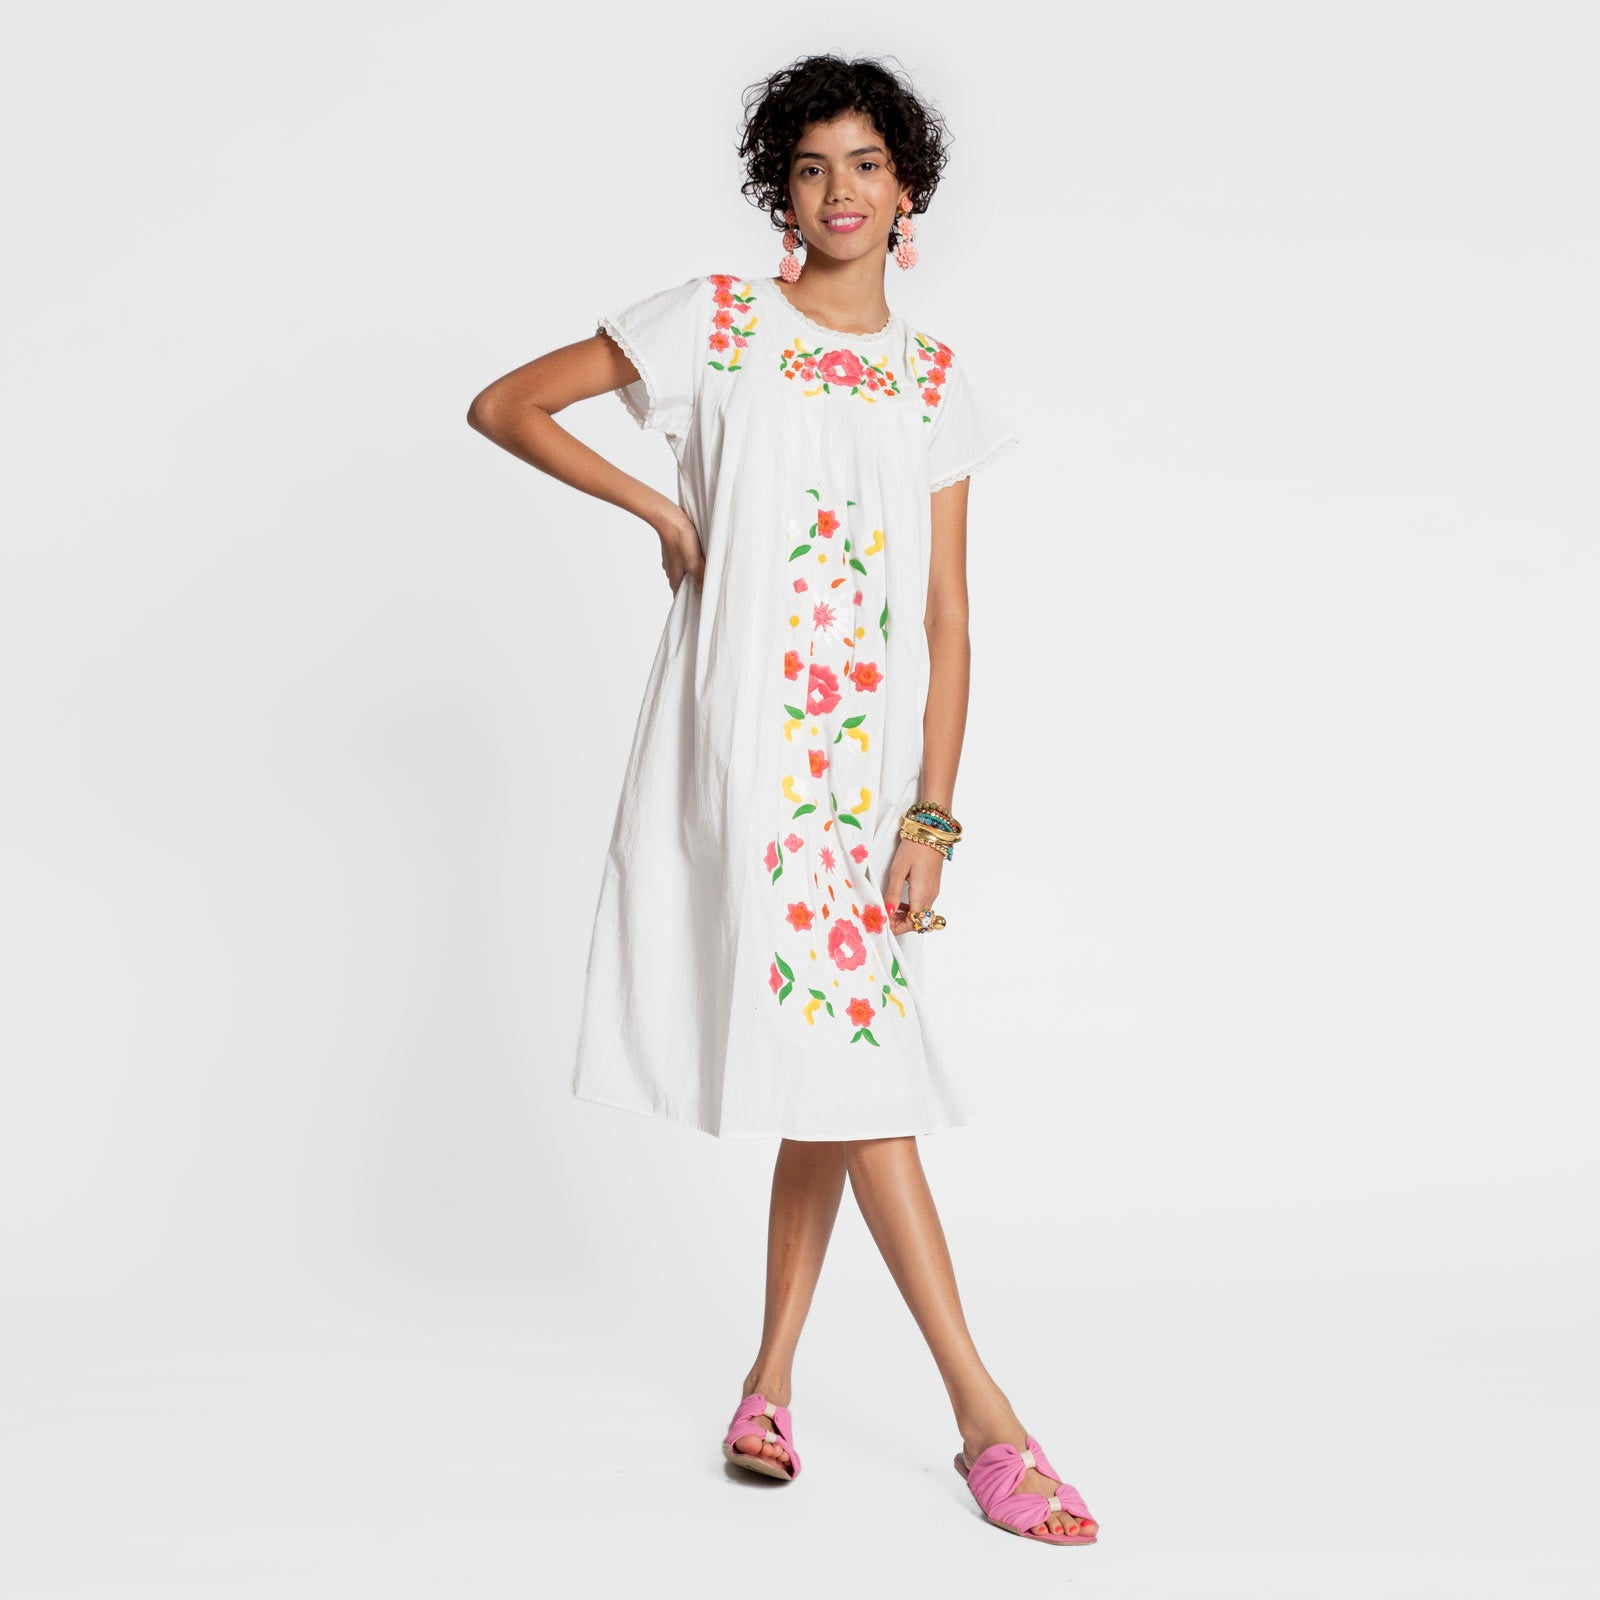 Floral Garland Embroidered Dress Oyster - Frances Valentine